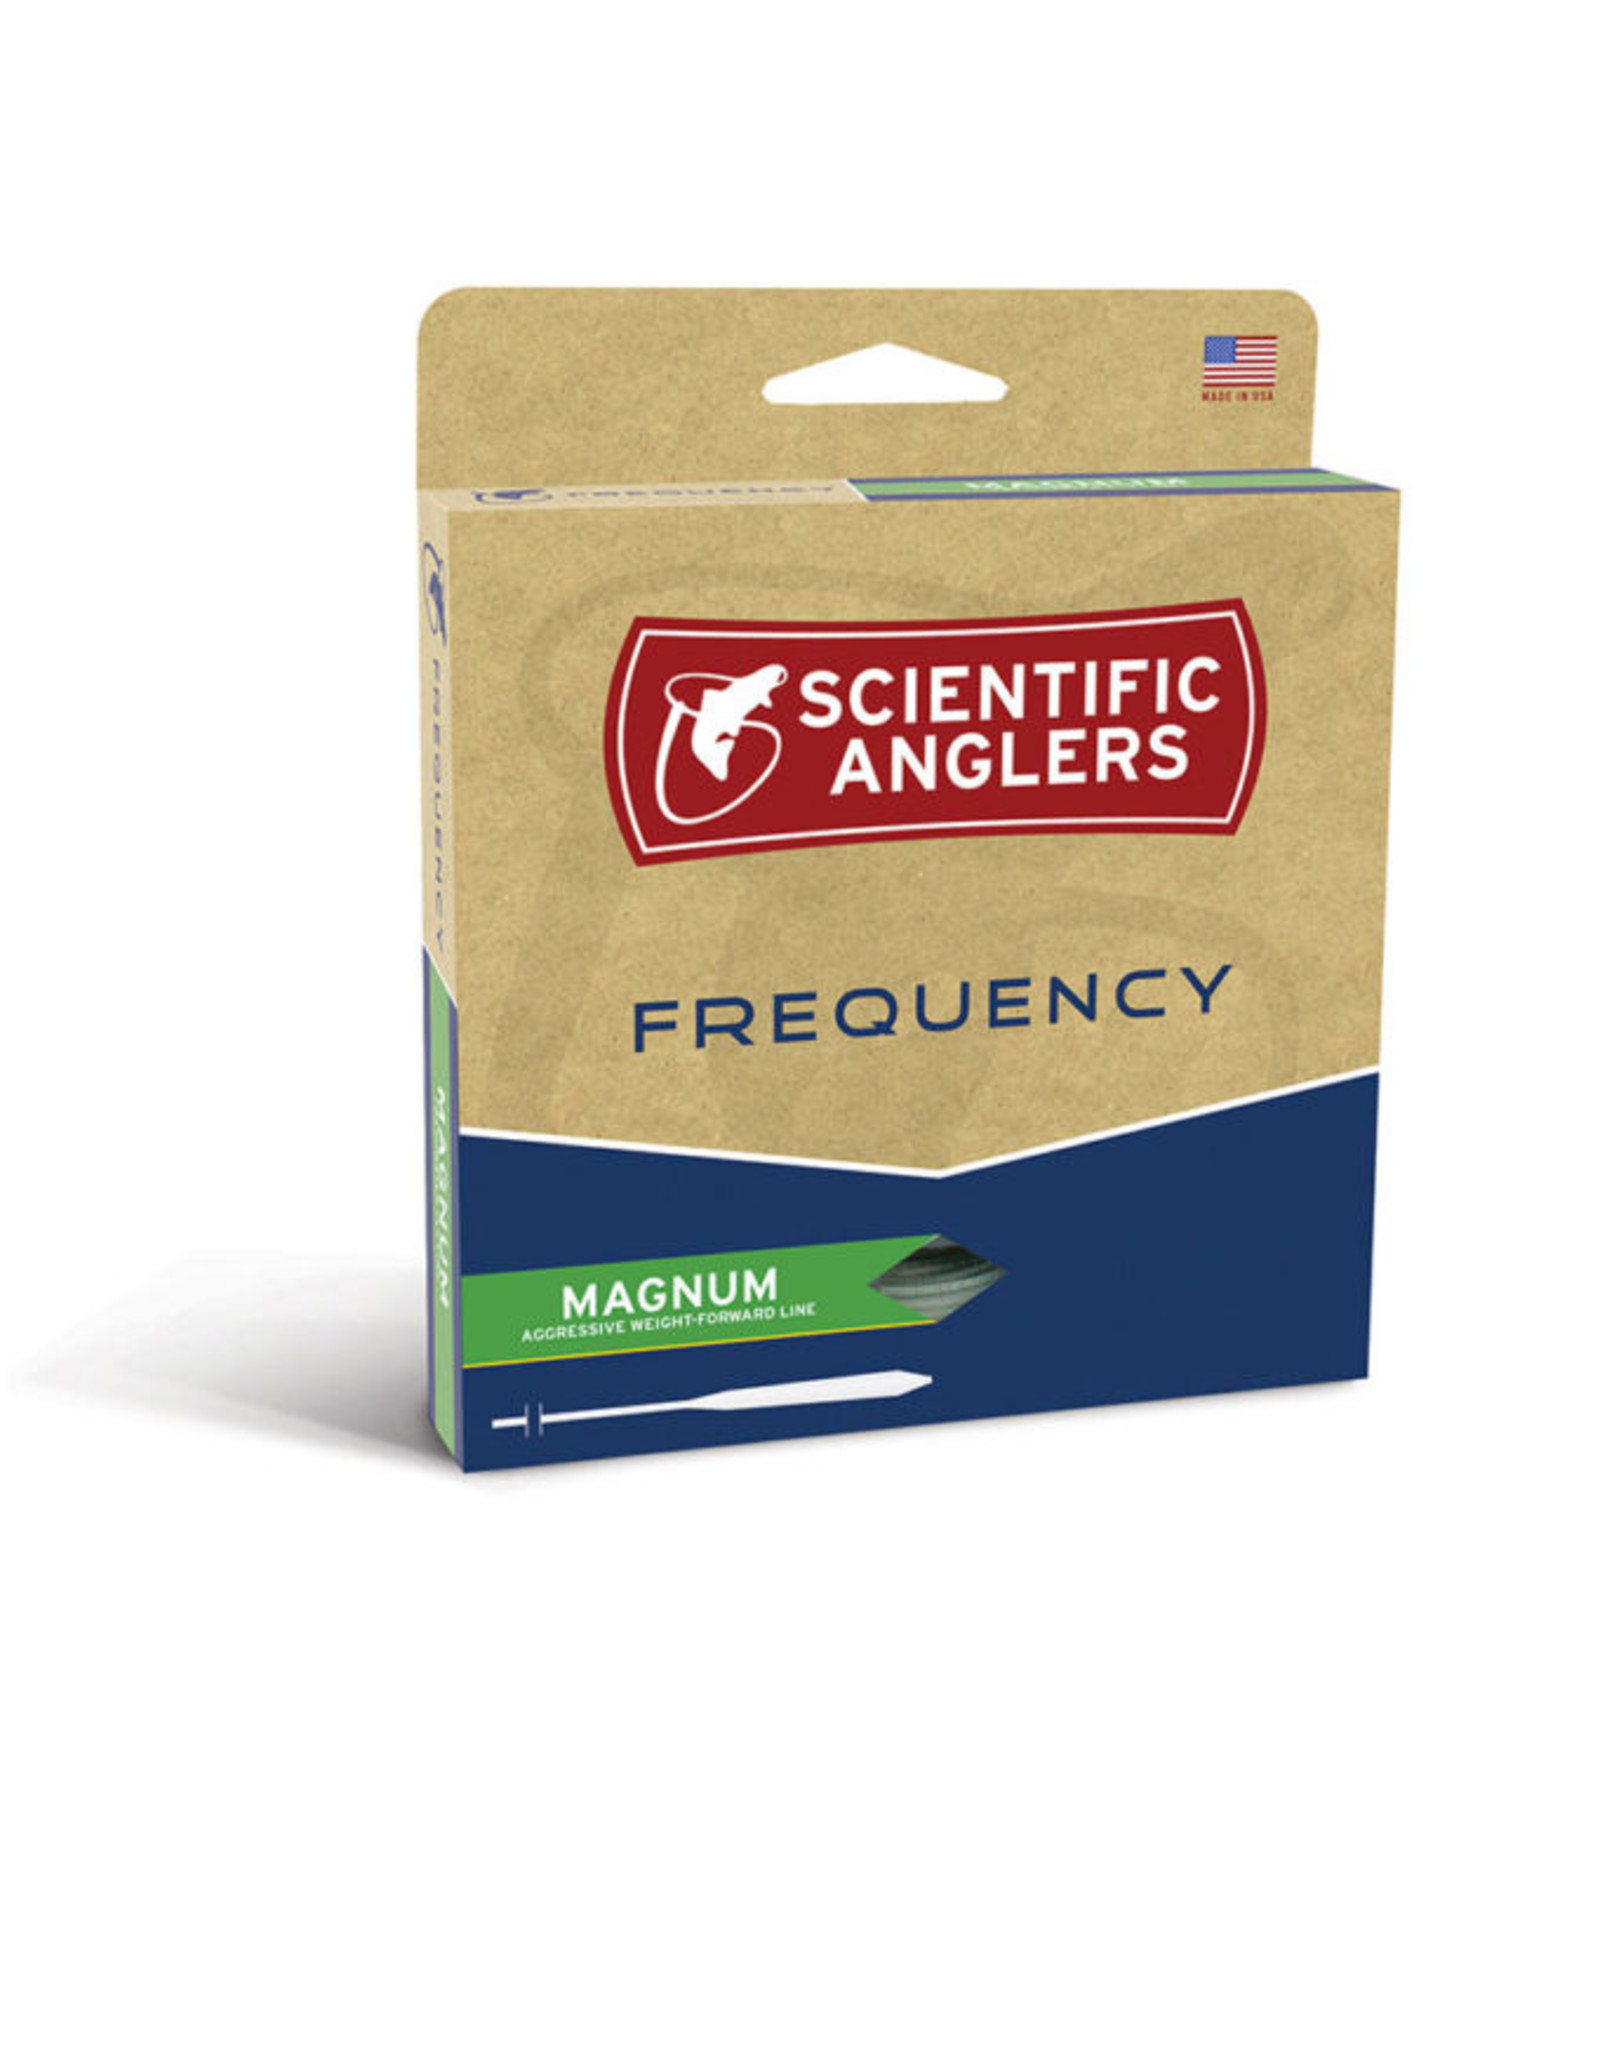 Scientific Anglers Scientific Anglers - Frequency Magnum Fly Line